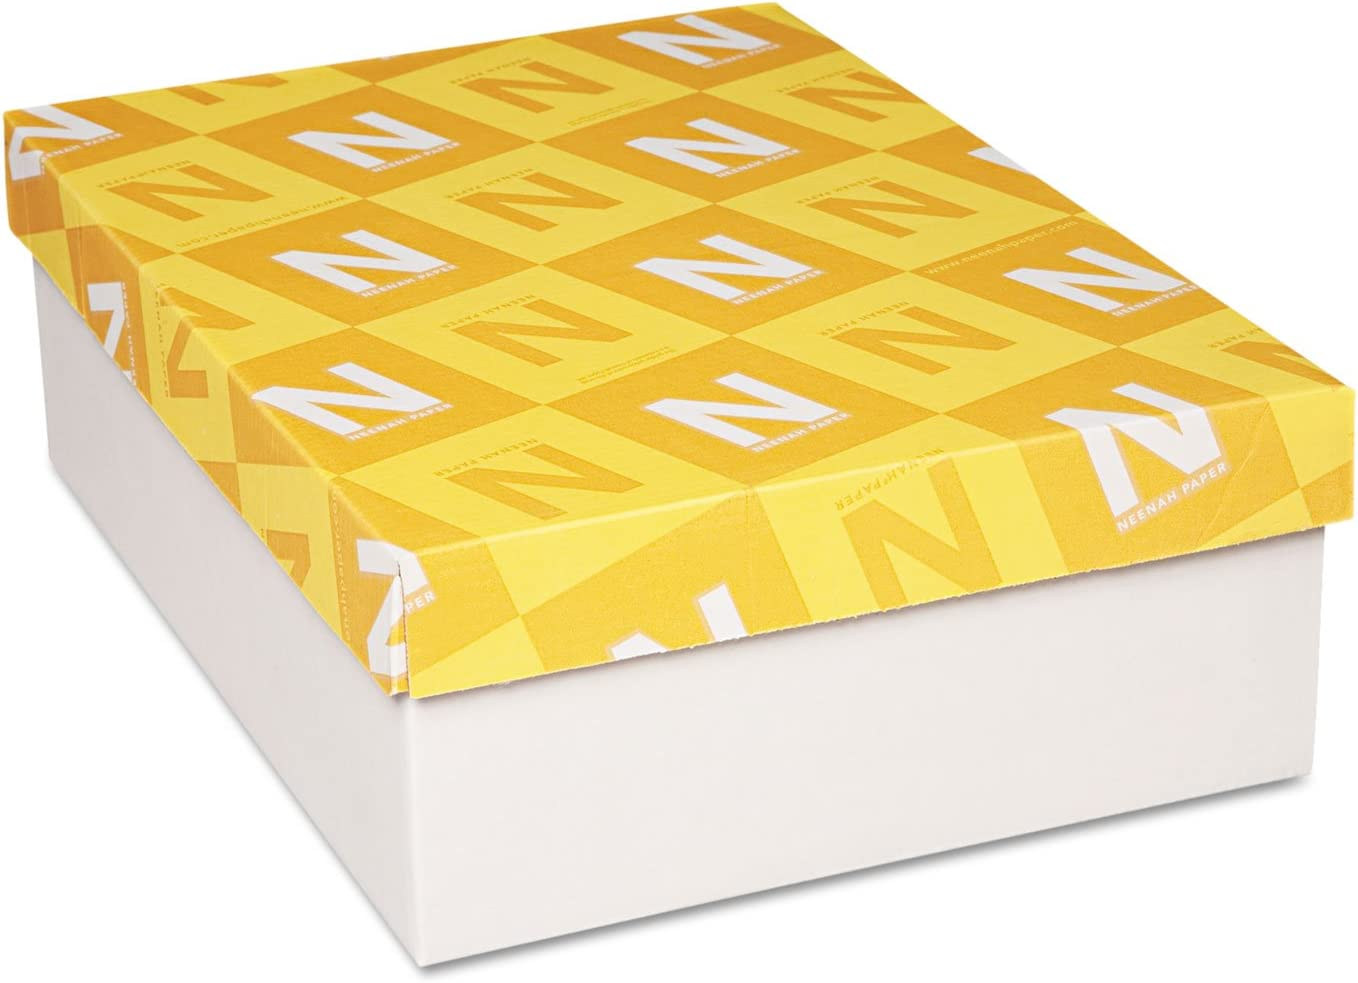 NEENAH Max 60% OFF Paper Classic Crest Oakland Mall Traditional White Envelop 10 Avon No.